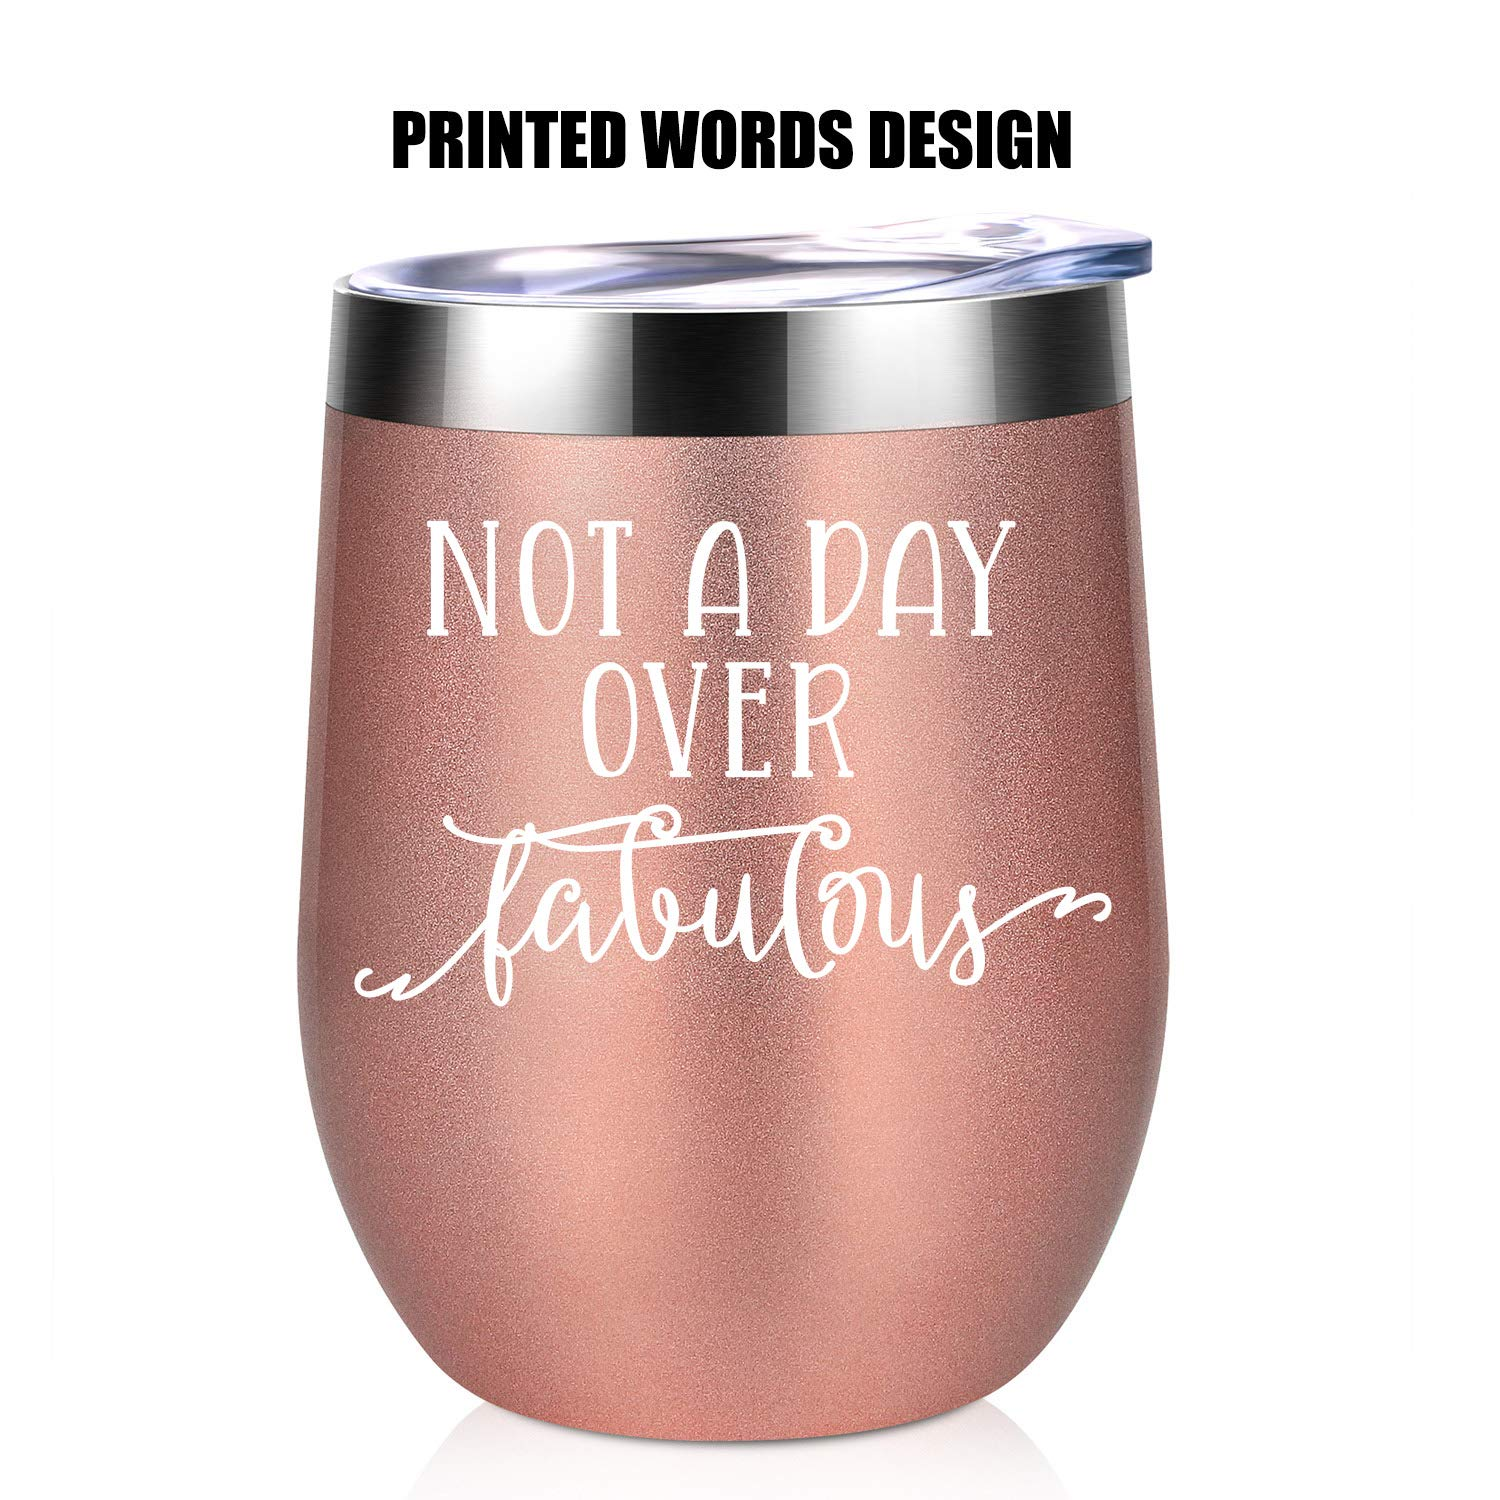 Not a Day Over Fabulous   Funny Birthday Wine Gifts Ideas for Women, BFF, Best Friends, Coworkers, Her, Wife, Mom, Daughter, Sister, Aunt   Coolife 12oz Stemless Insulated Wine Tumbler with Lid by Coolife (Image #8)